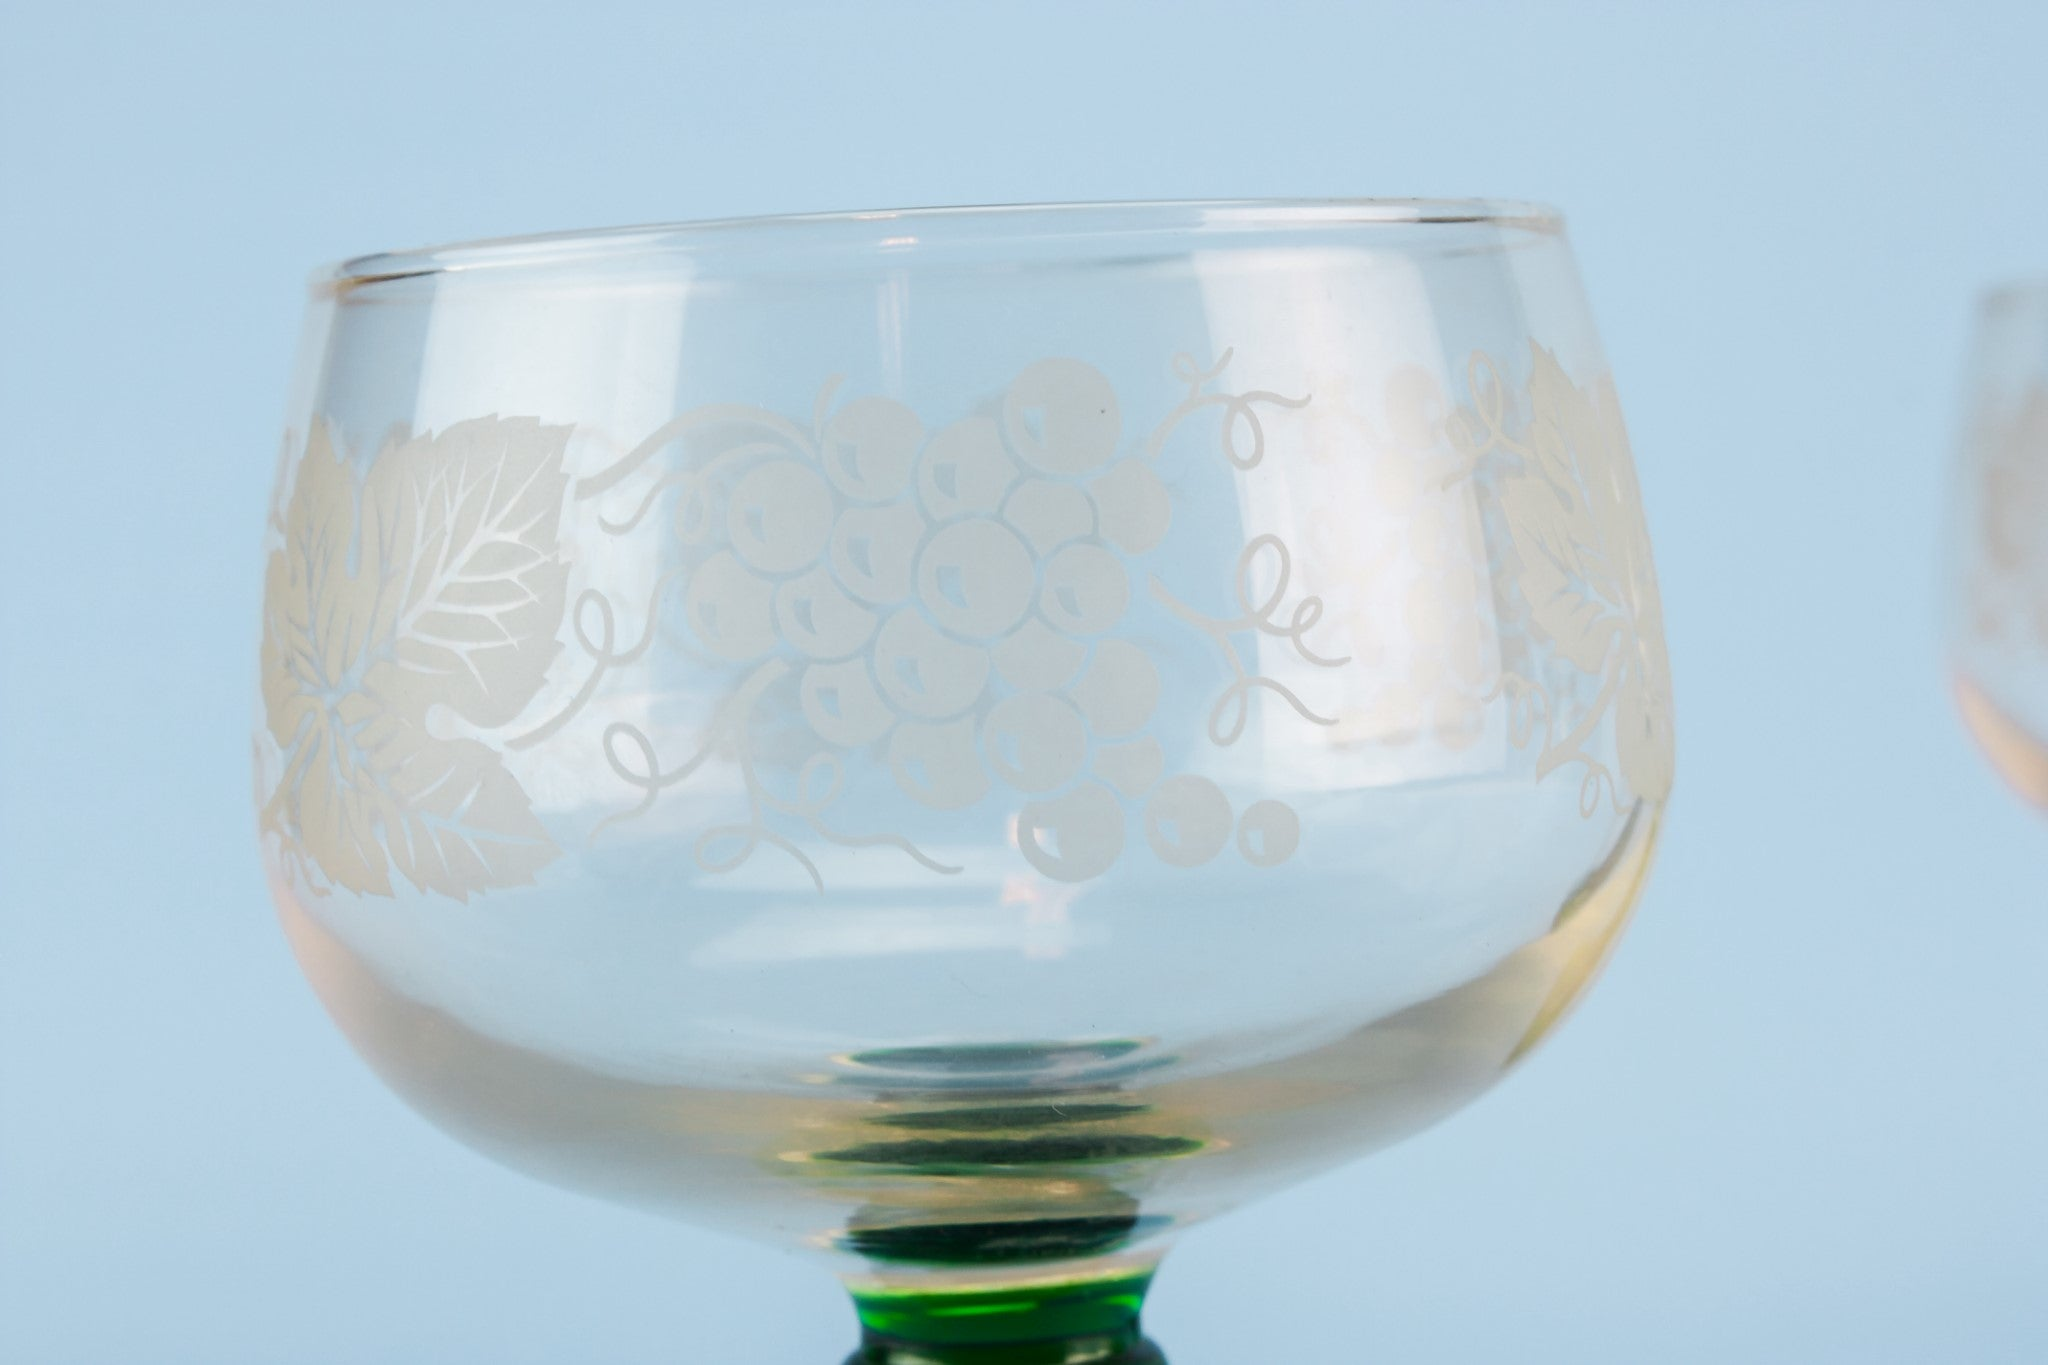 2 green wine glasses